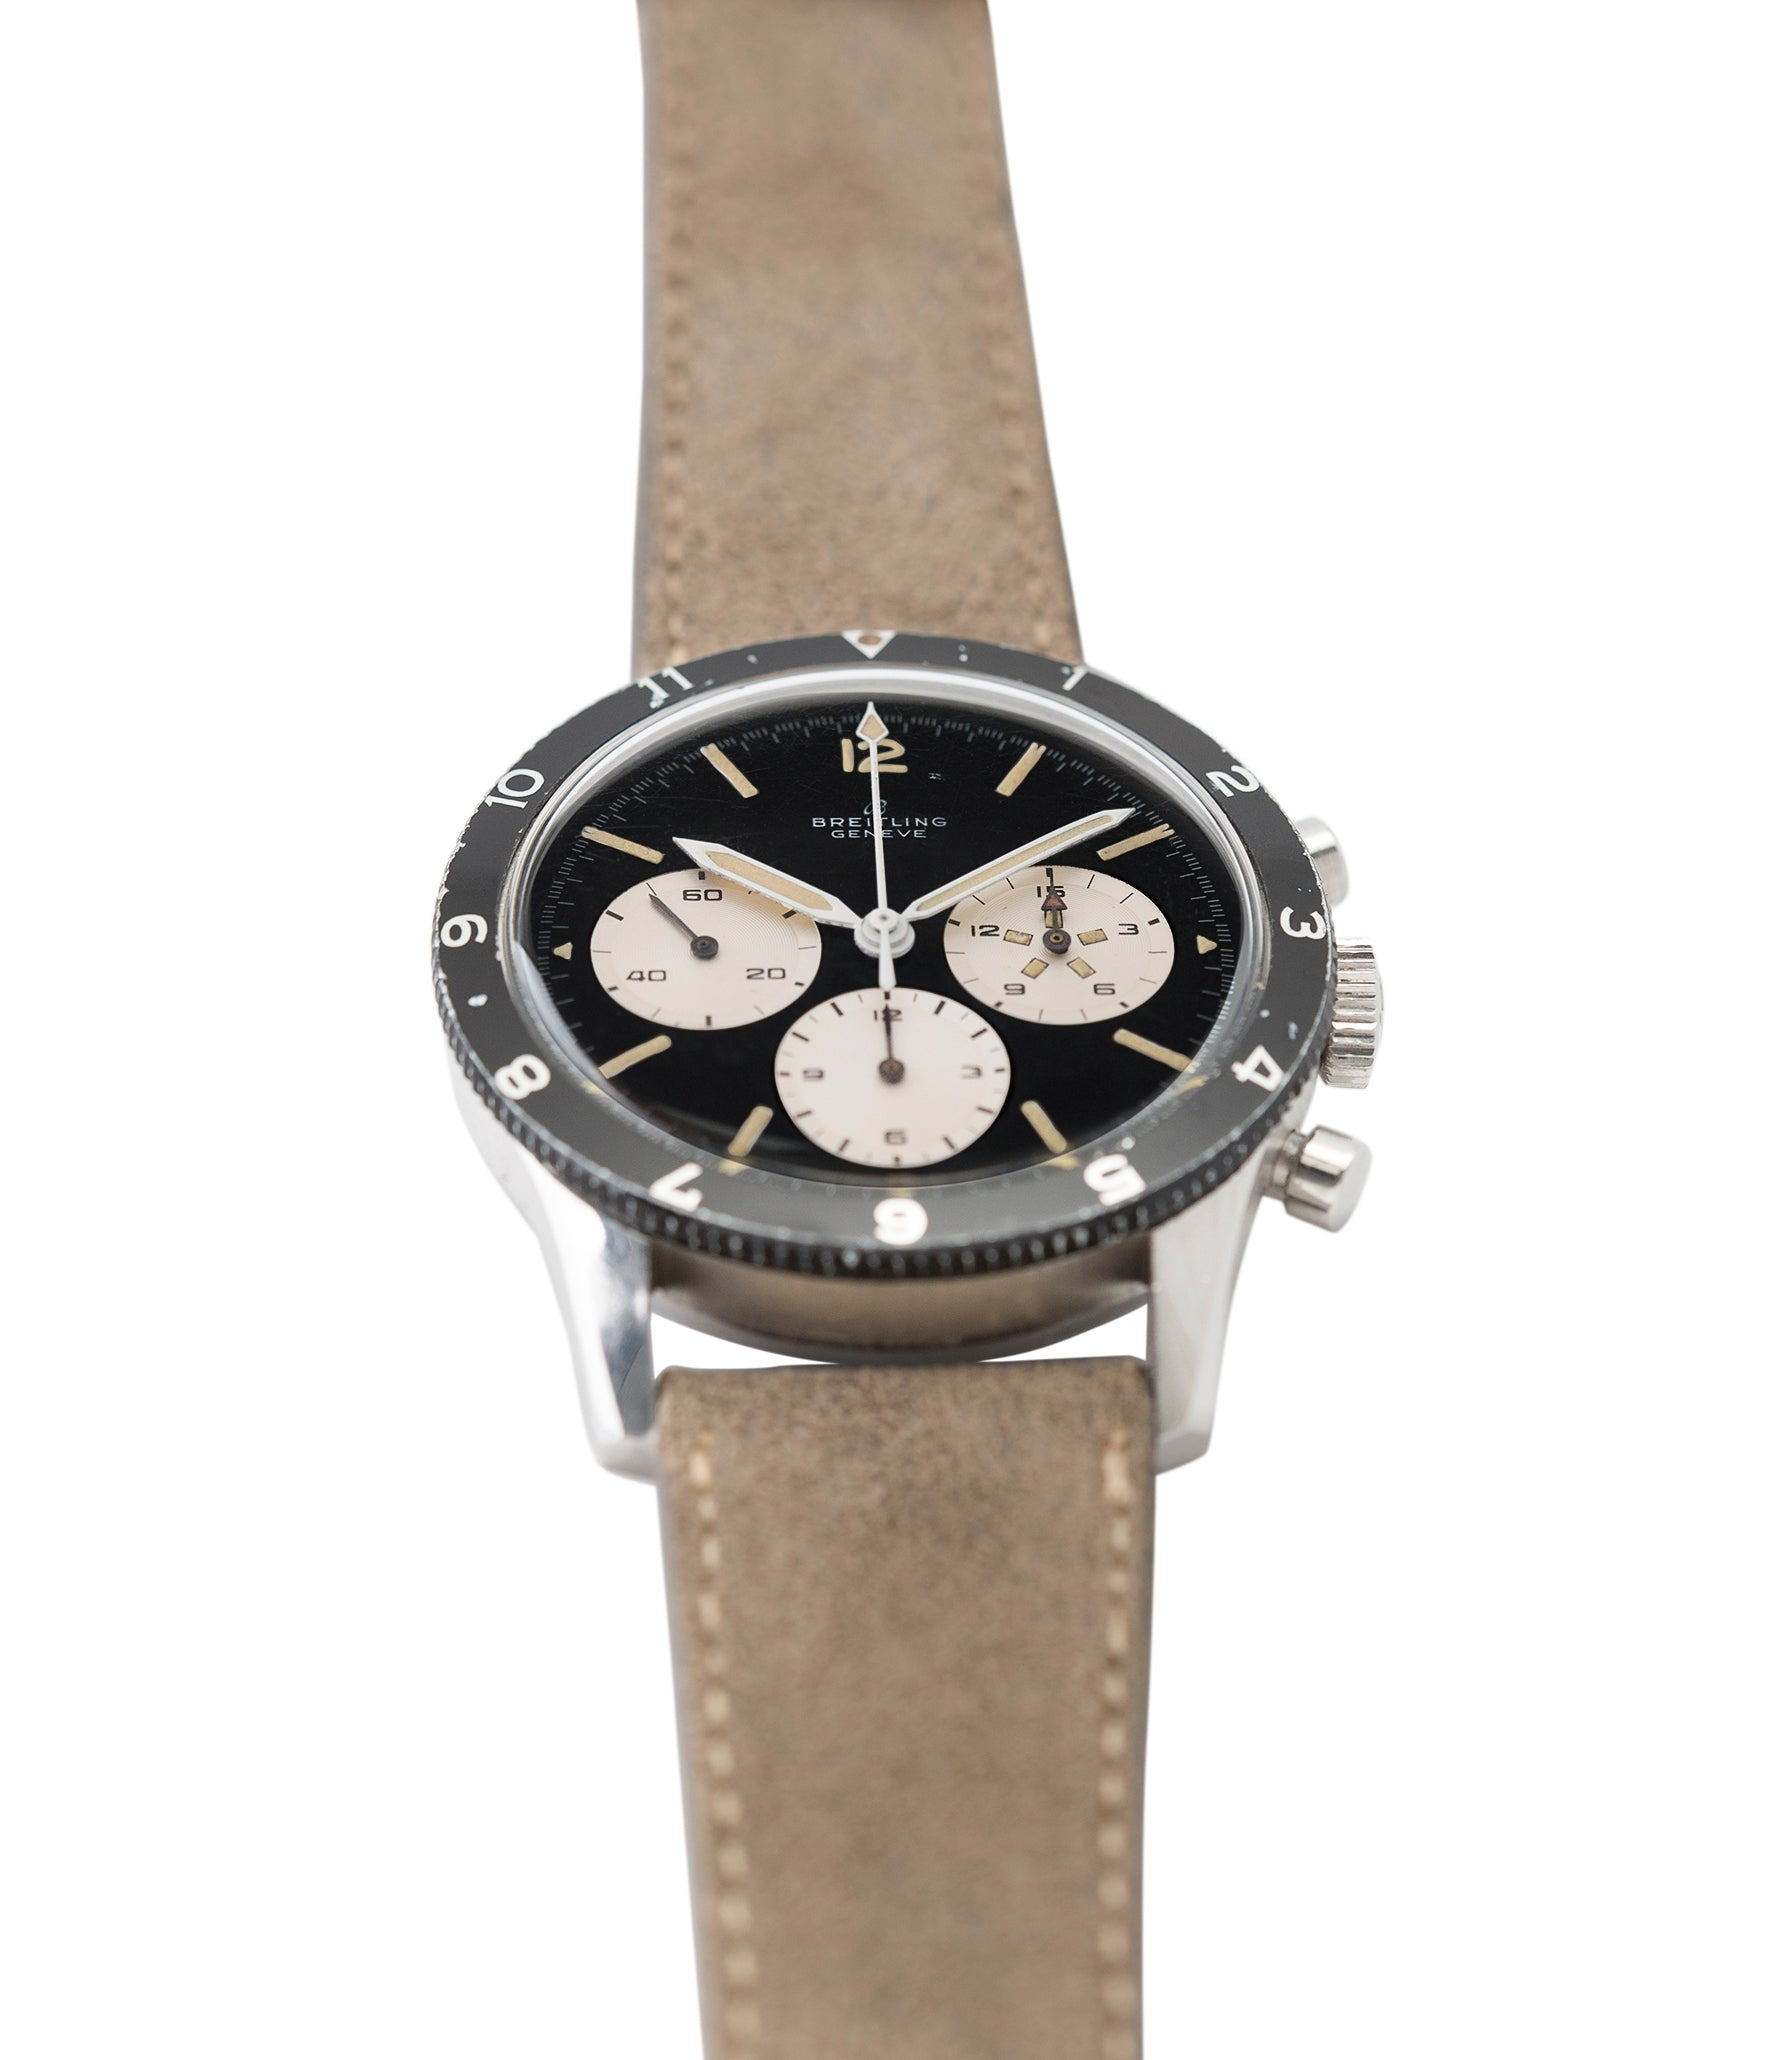 sell Breitling 765 AVI pilot steel vintage chronograph watch online at A Collected Man London UK specialist of rare vintage watches